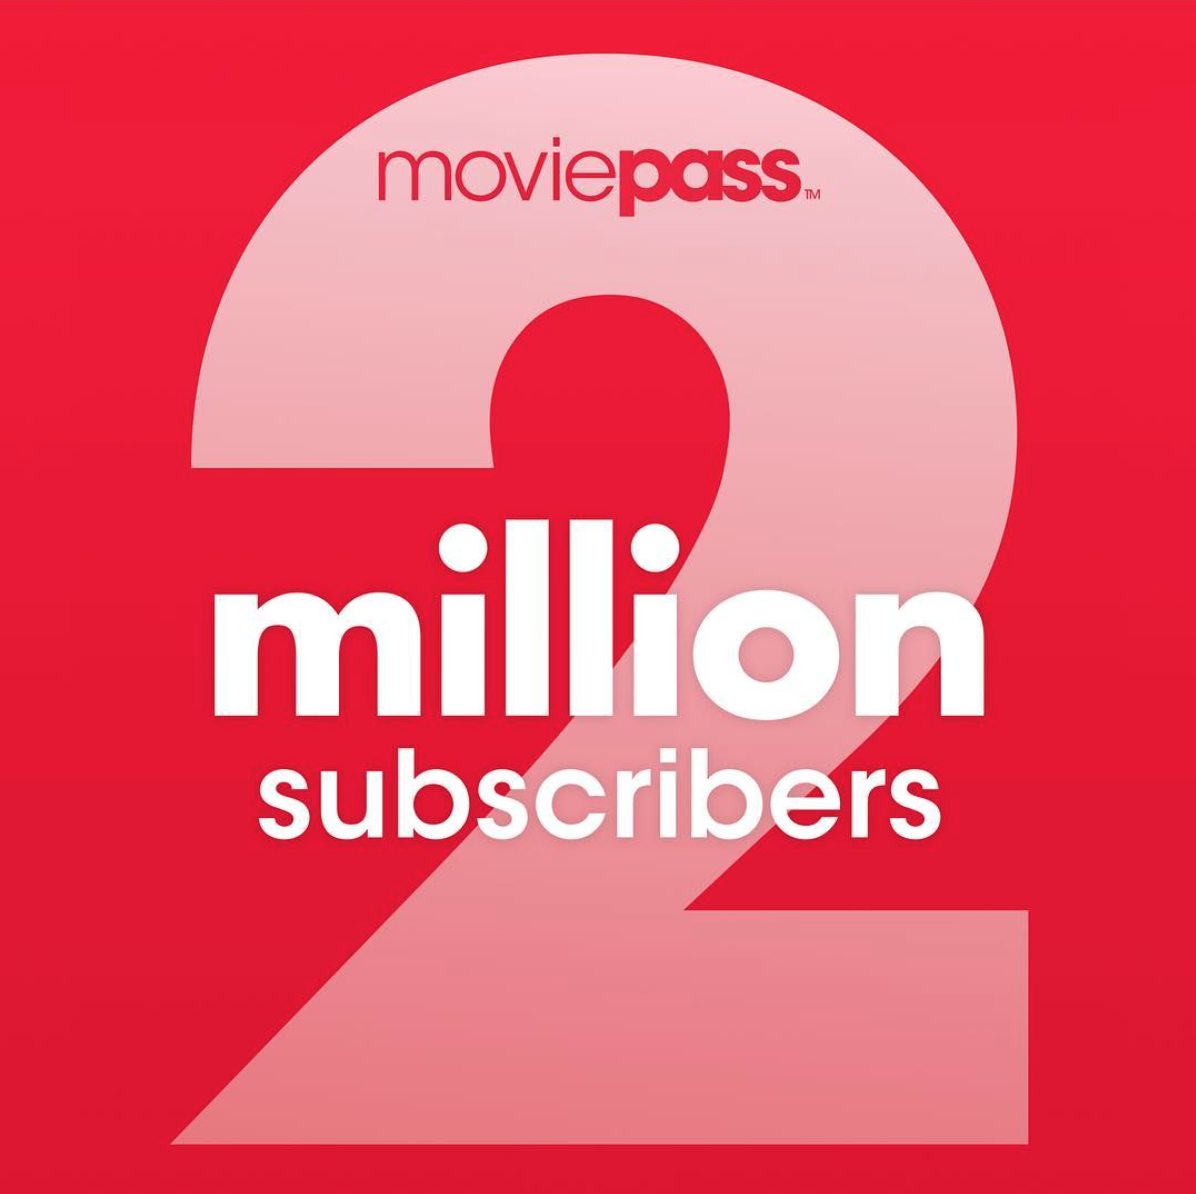 MoviePass reached 2 million subscribers